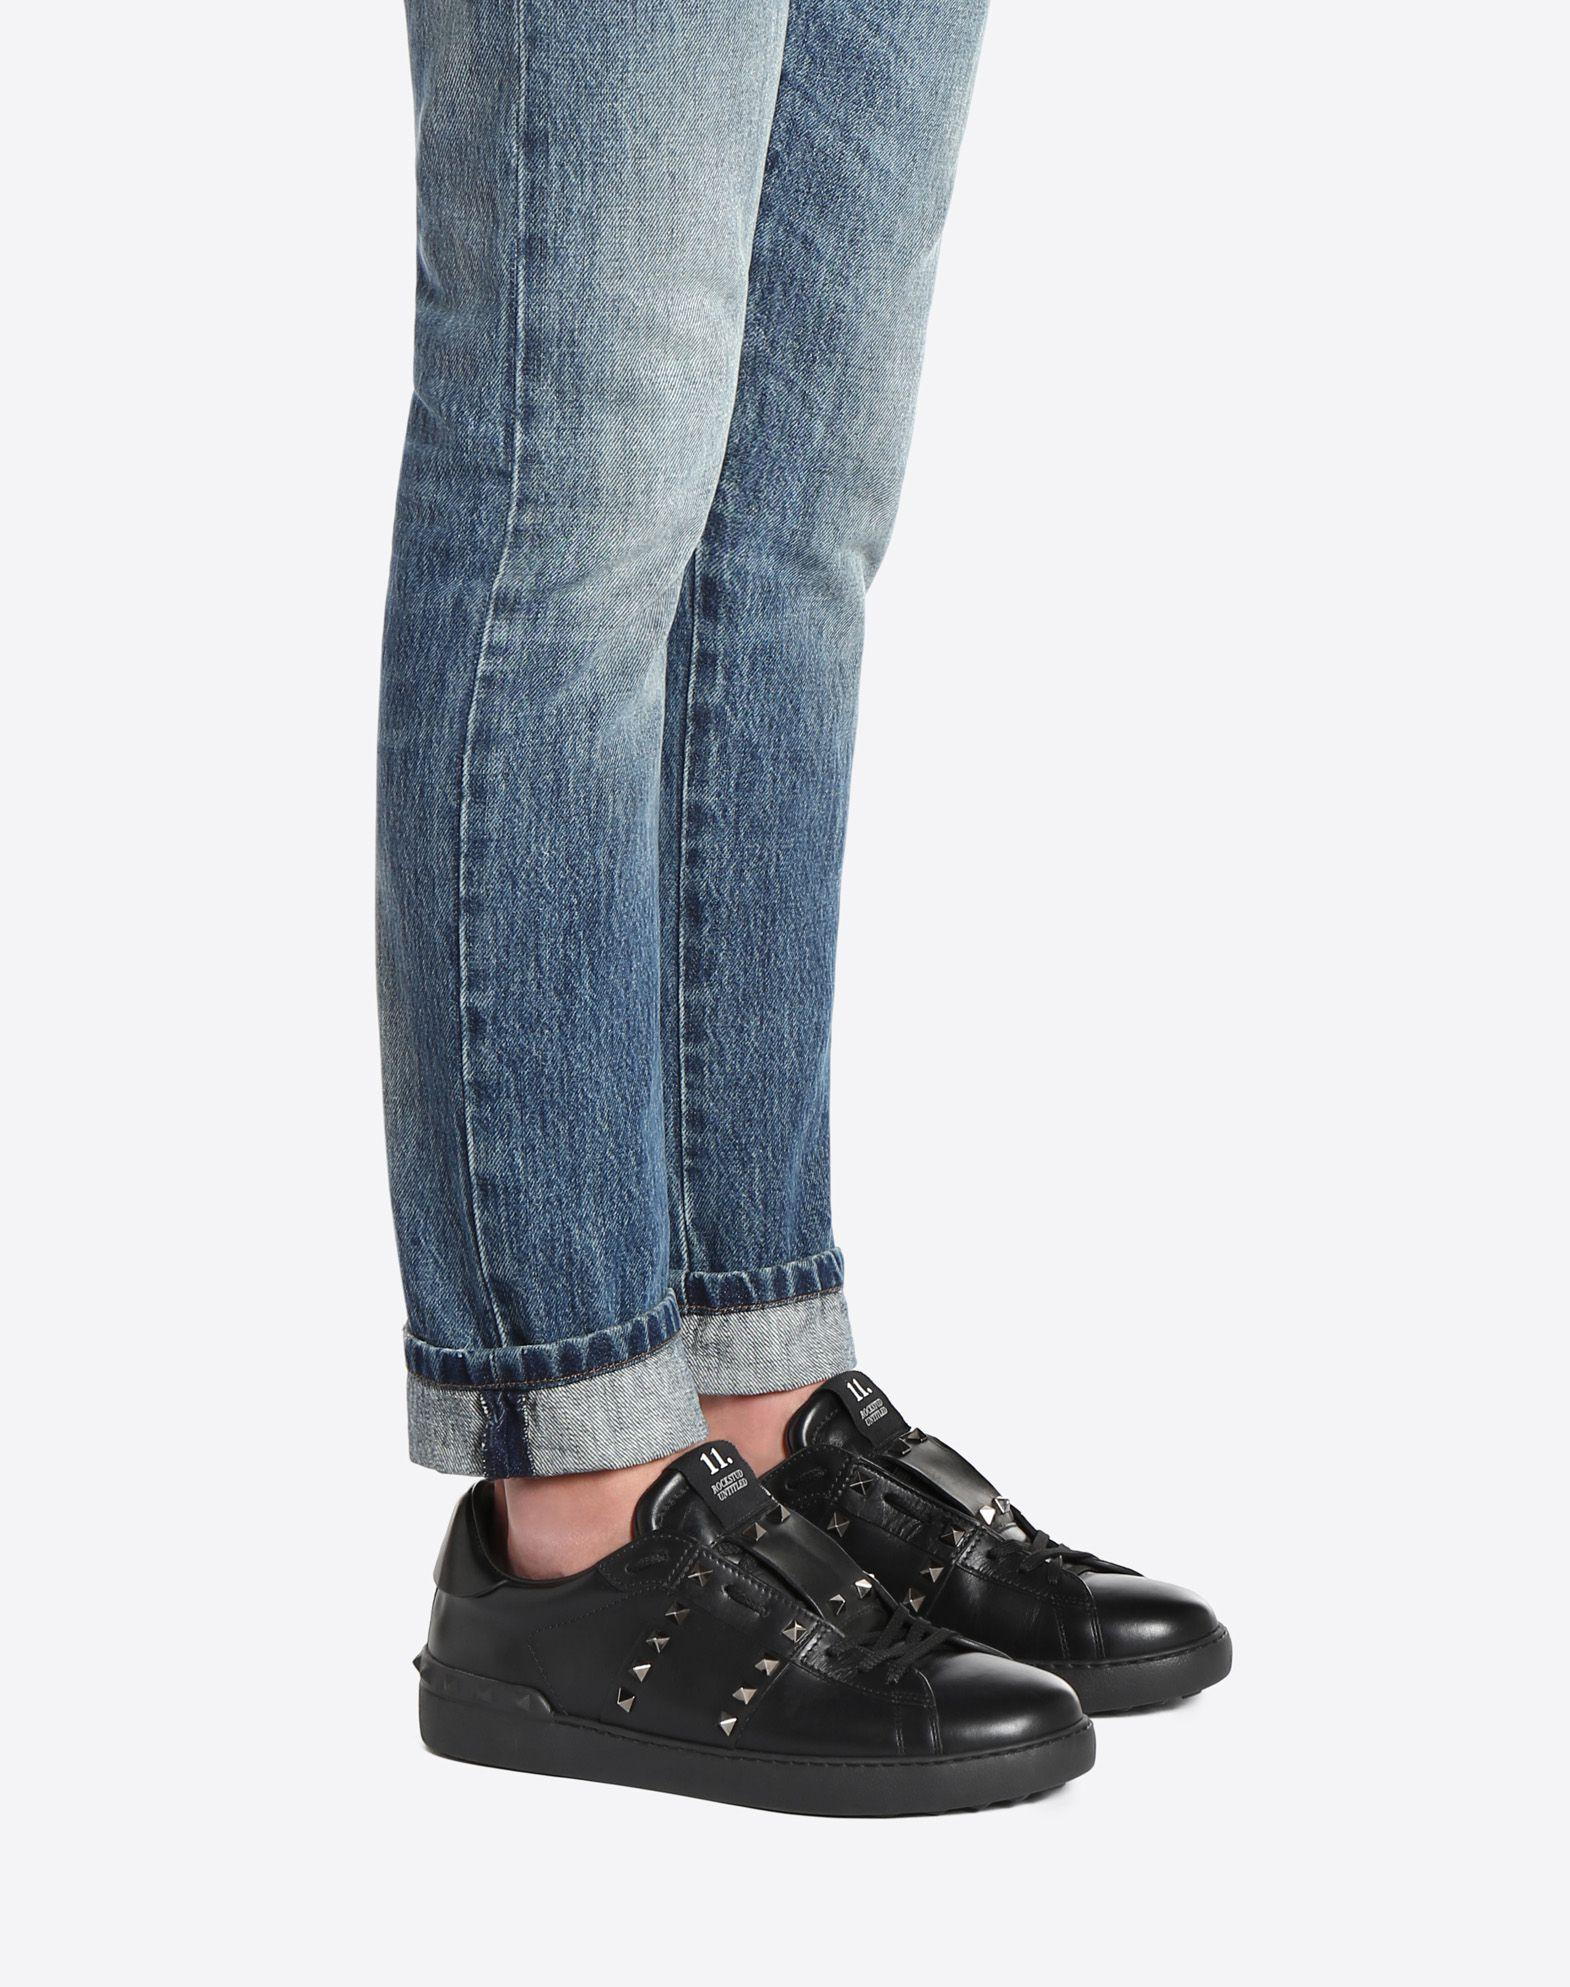 ffb8c929a Valentino Rockstud Untitled Men's Leather Low-Top Sneaker, Black ...